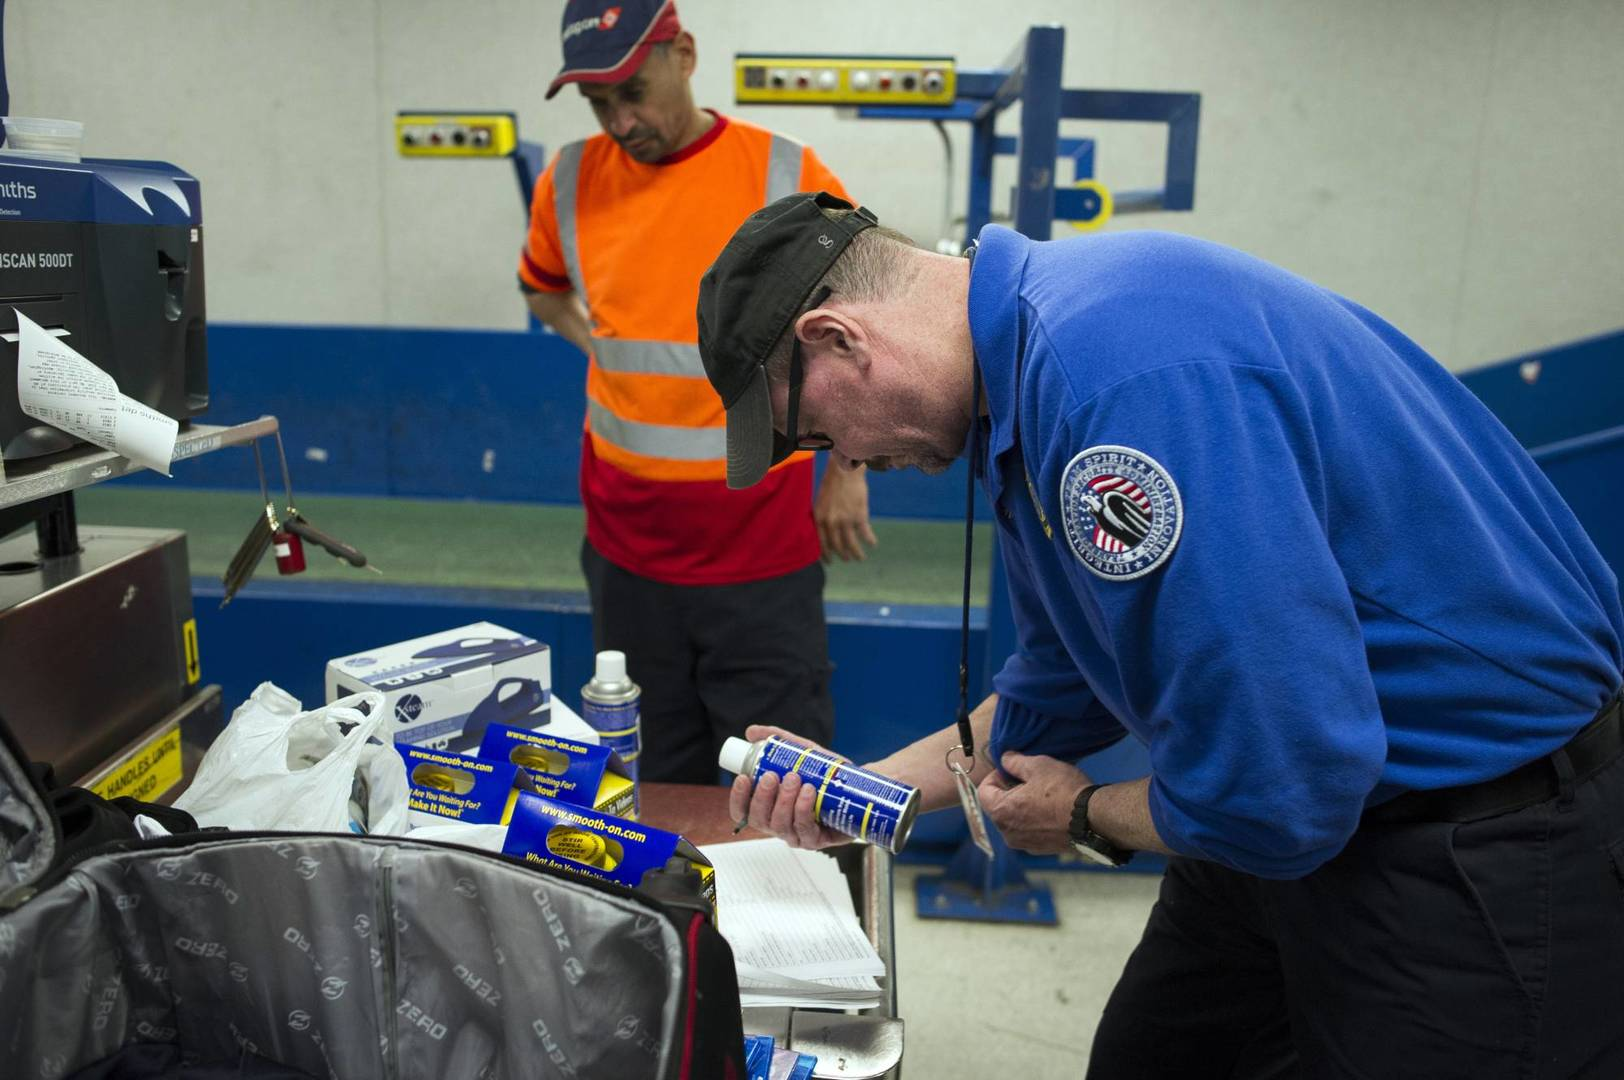 A Transportation Security Adminstration (TSA) transport security officer inspects a can which was packed in a suitcase flagged for a seconday inspection at Dulles International Airport in Dulles, Va., Tuesday, March 26, 2019. The can and the suitcase it was packed in was flagged for a secondary inspection at the intial TSA checkpoint the passenger passed through. TSA's social media presence has been something of a model for other federal agencies _ striking a tone is humorous, but still gives travelers informational dos and don'ts. (AP Photo/Cliff Owen)